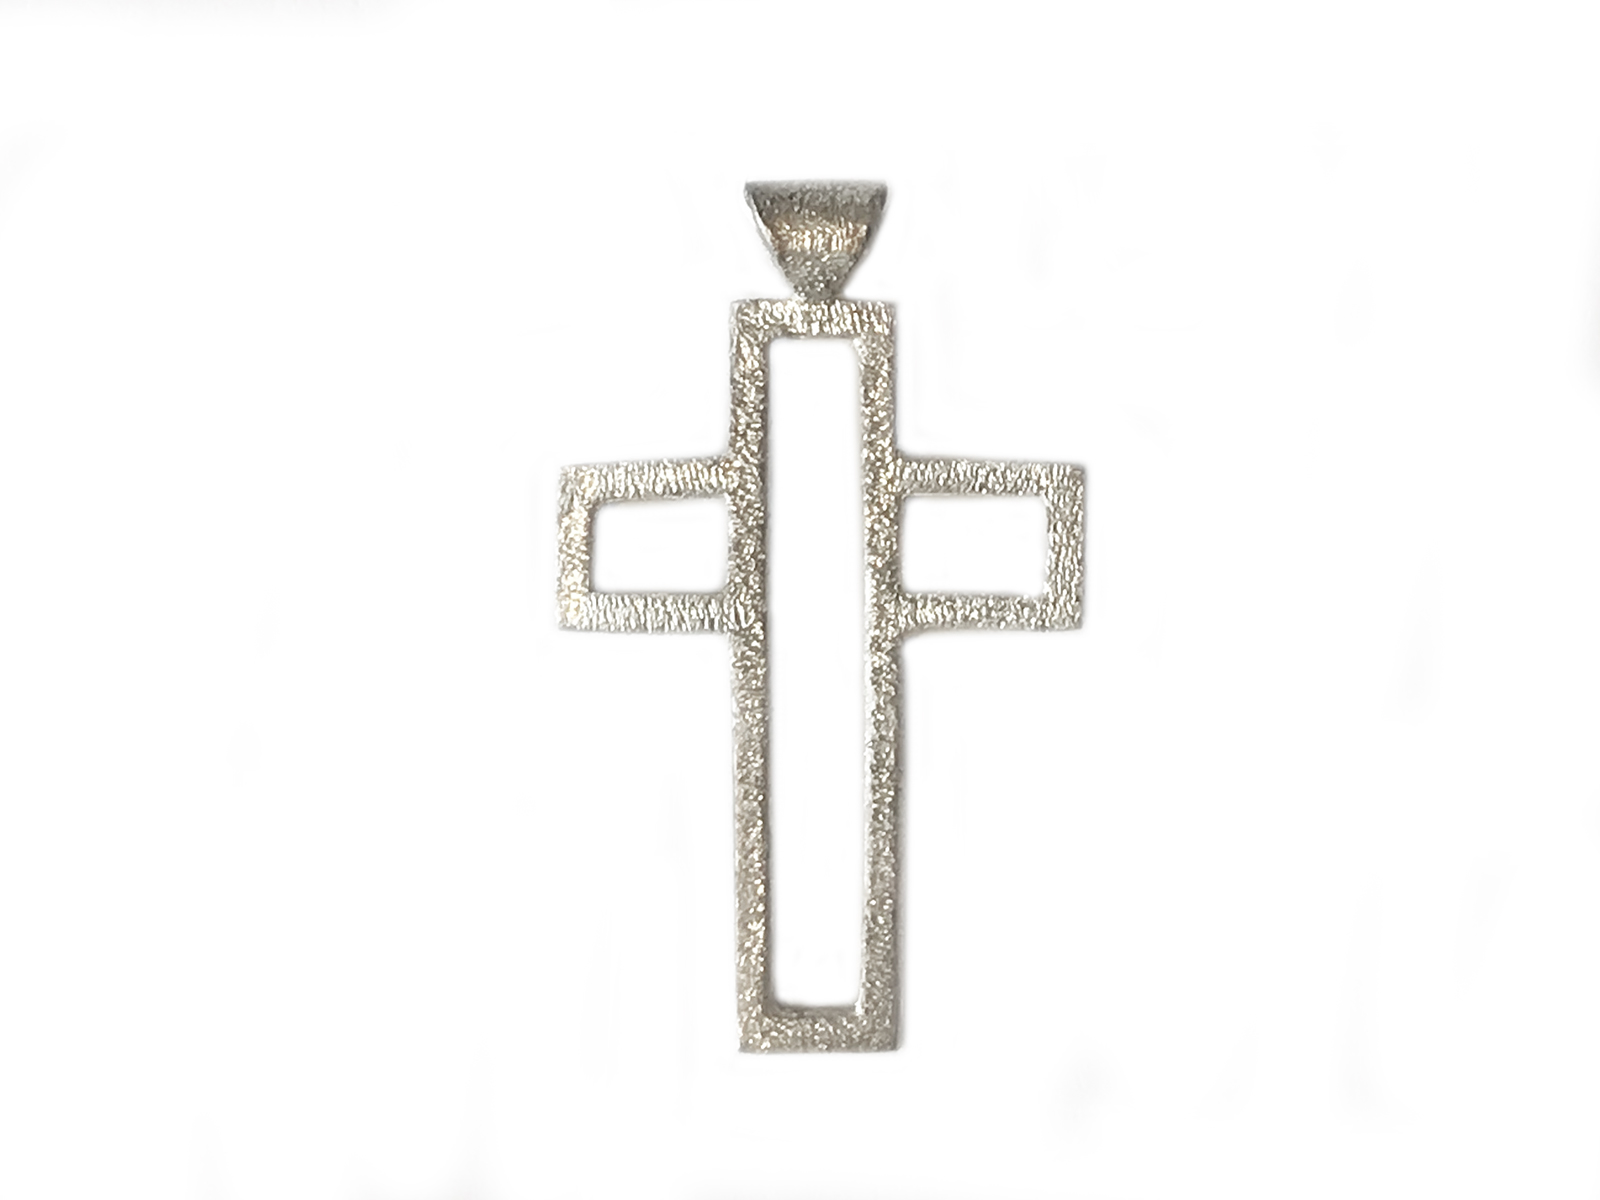 Hand Textured Silver Cross Pendant